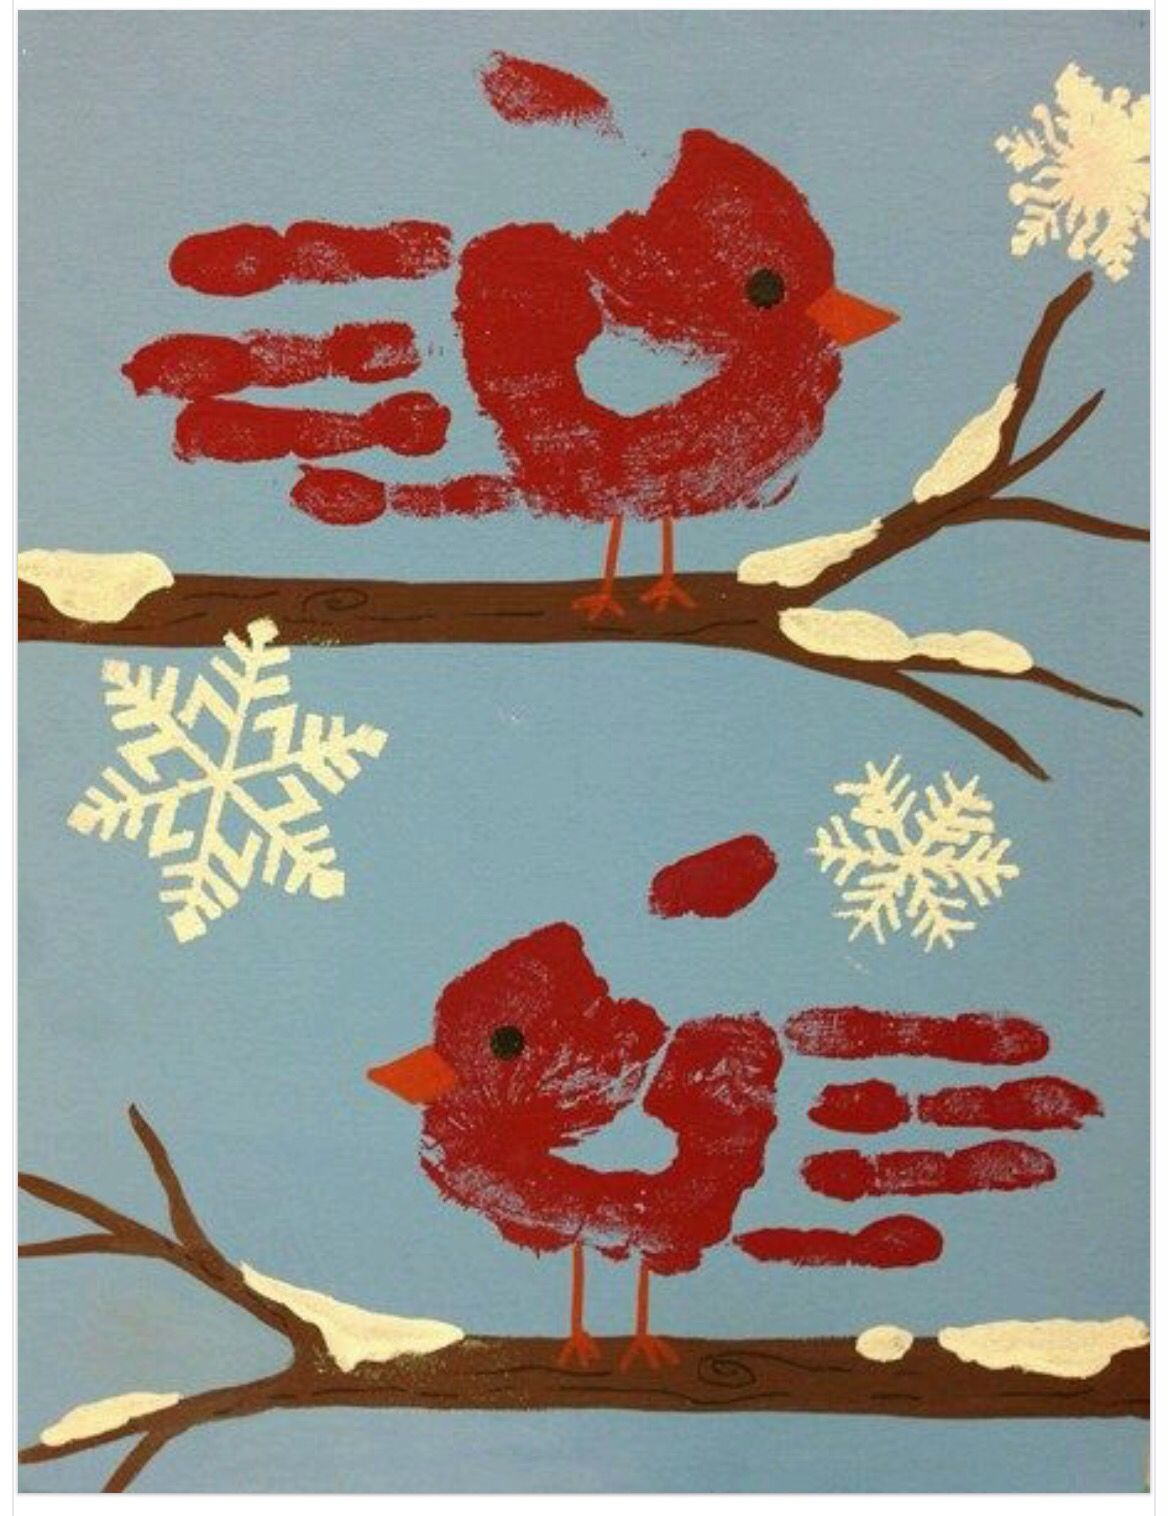 Pin by Hope Bonucchi on School | Pinterest | Craft, Winter and ...